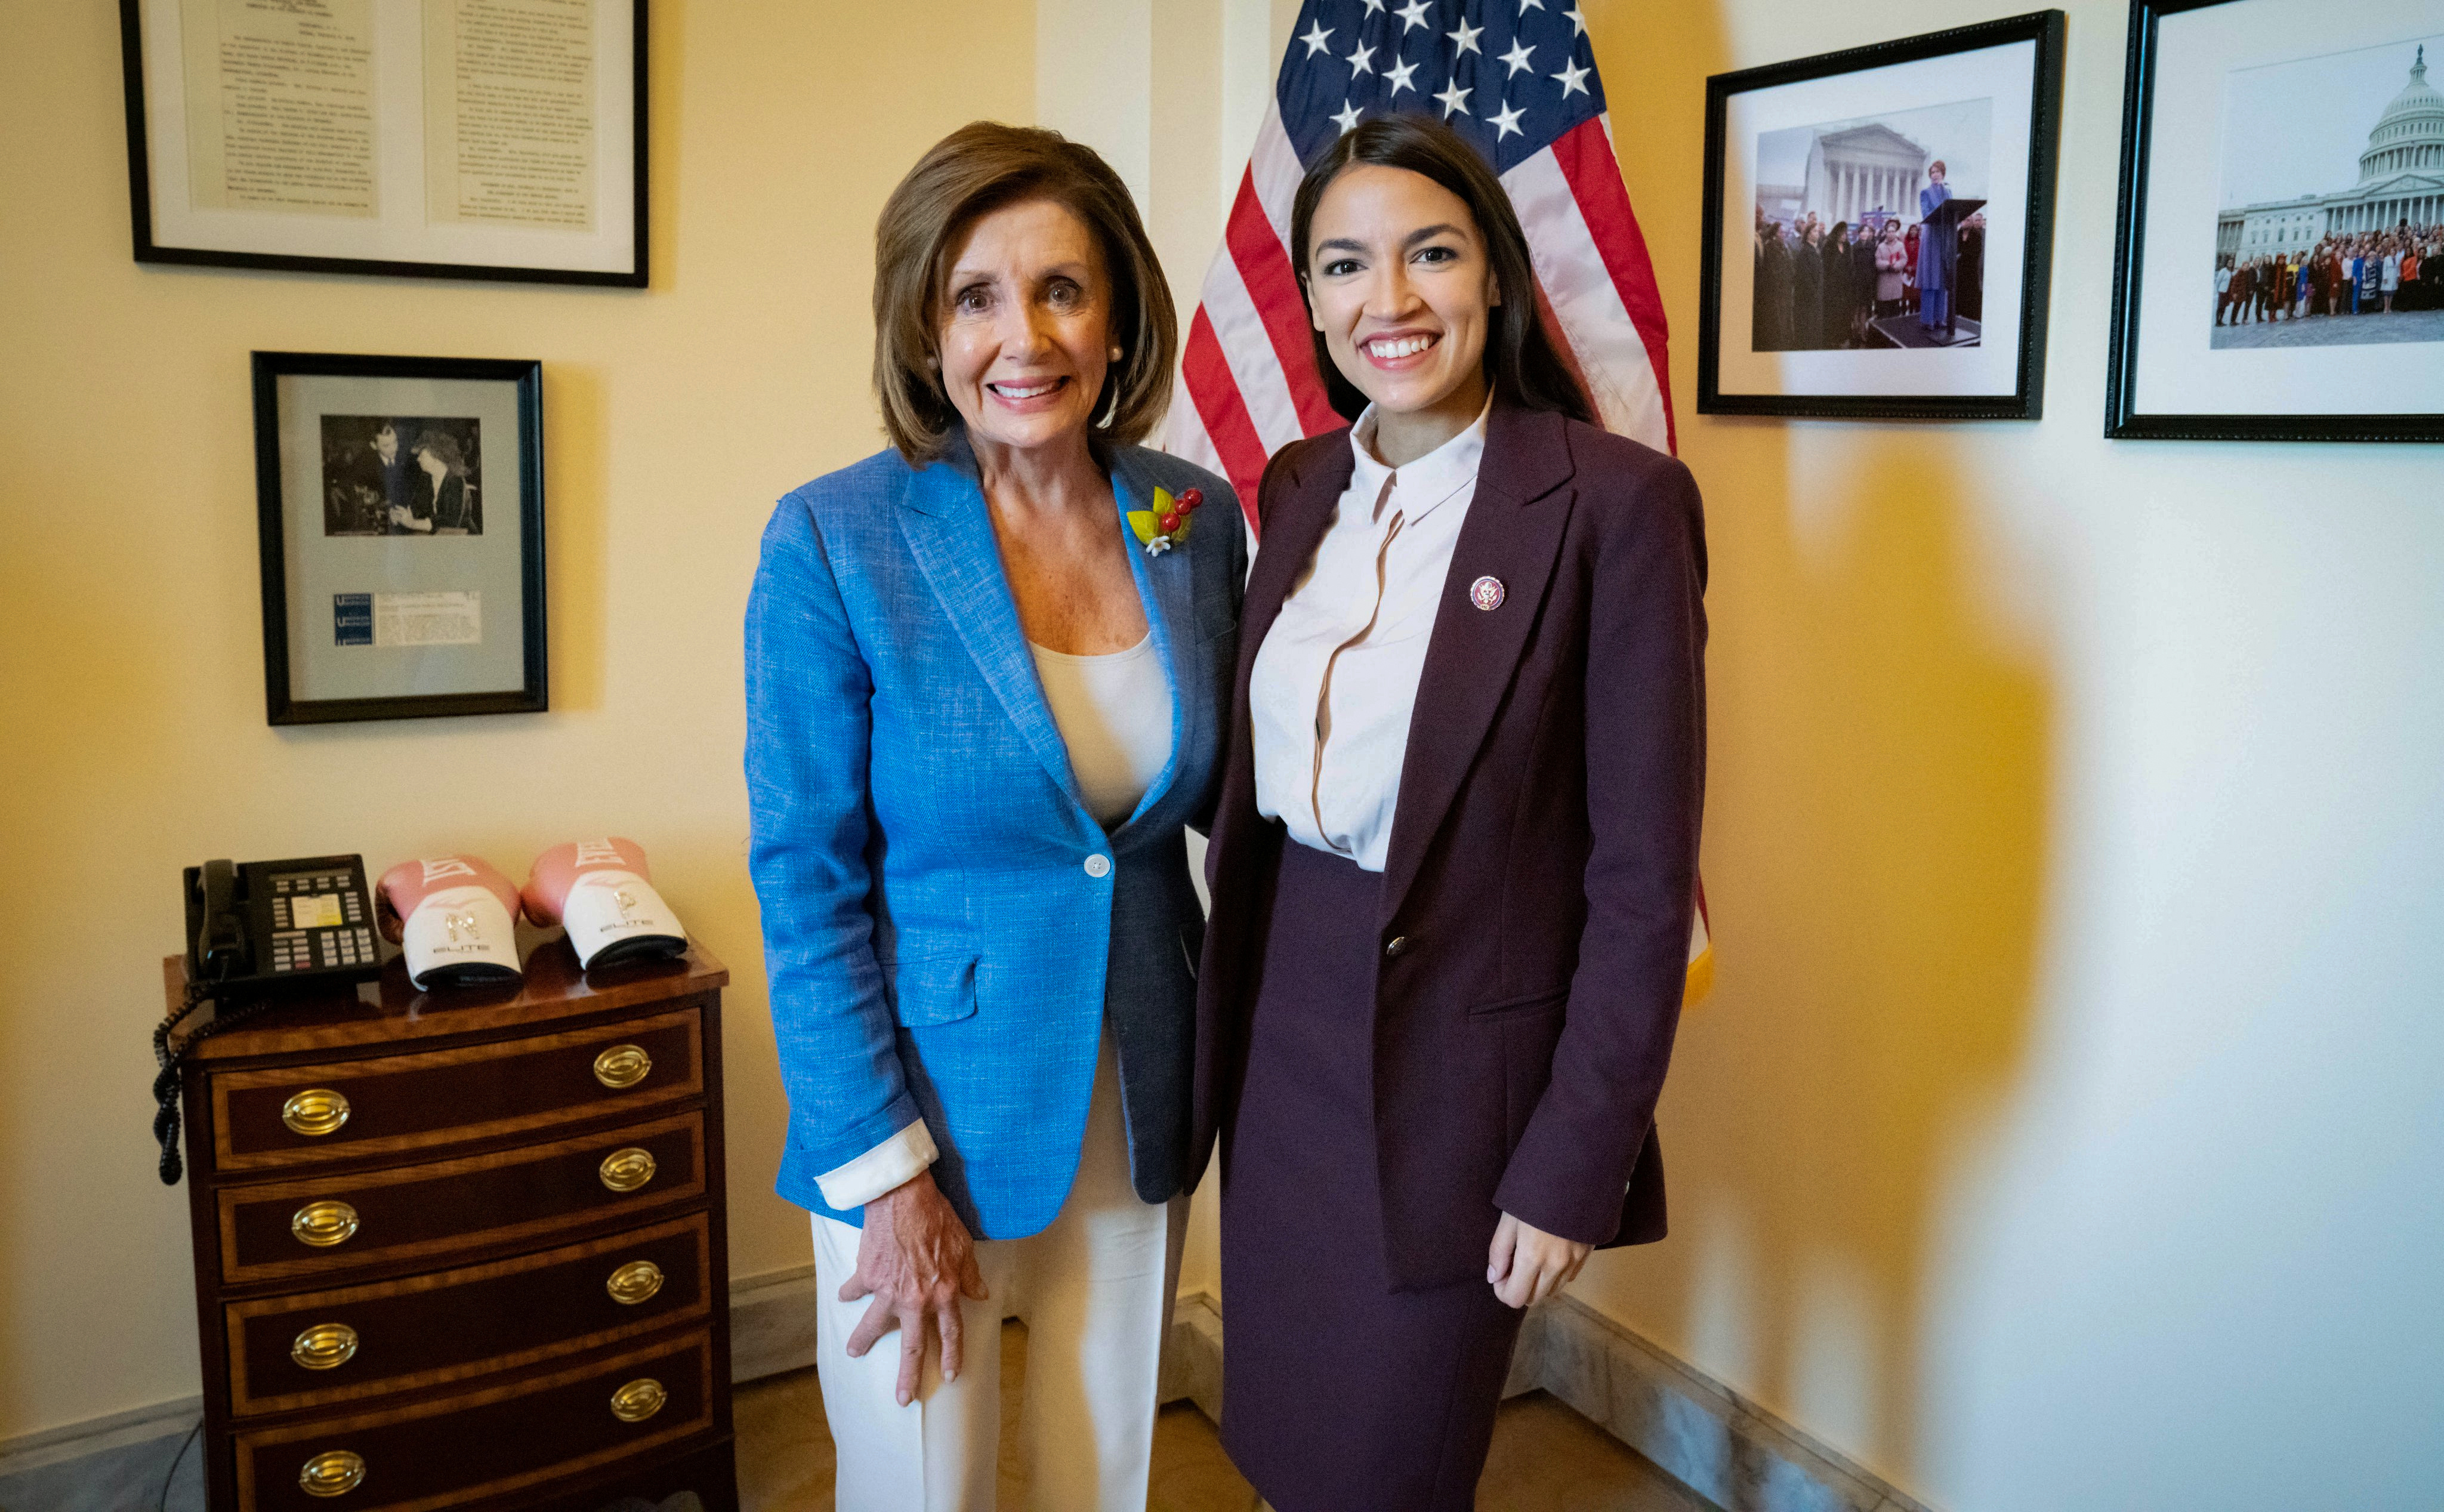 U.S. Speaker of the House Nancy Pelosi (D-CA) poses with Rep. Alexandria Ocasio-Cortez (D-NY) in a photo released by her office after they met in the Speaker's office at the U.S. Capitol in Washington, U.S. July 26, 2019. Office of House Speaker Nancy Pelosi/via REUTERS